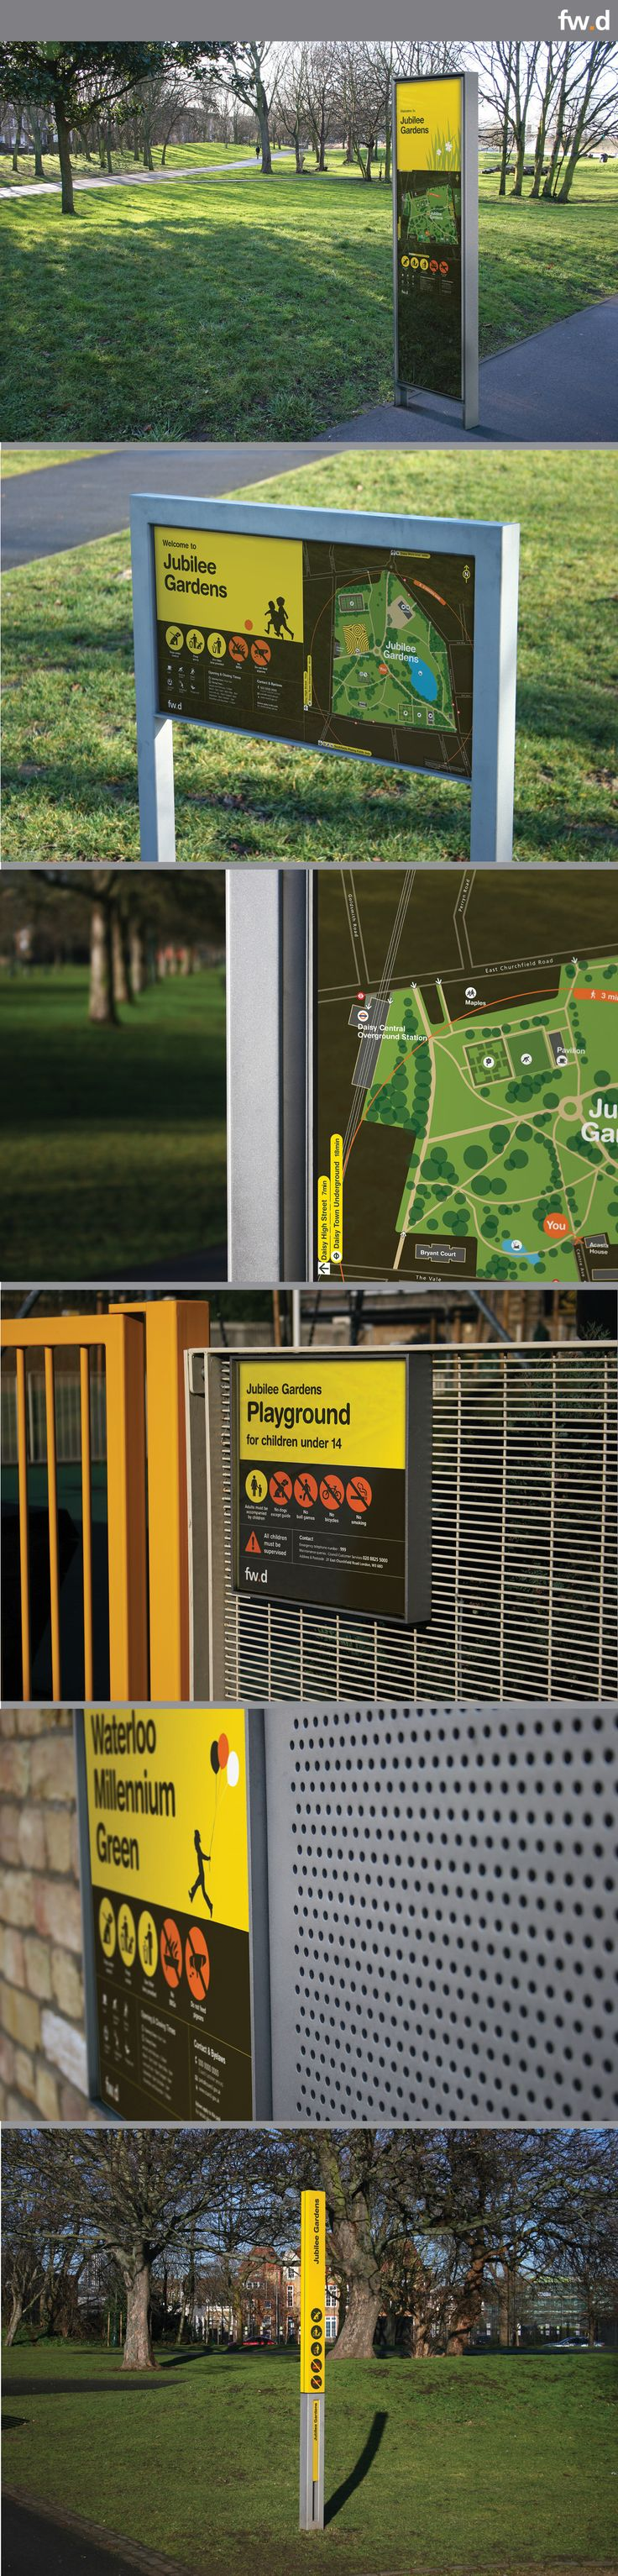 1000 Images About Parks Signage On Pinterest